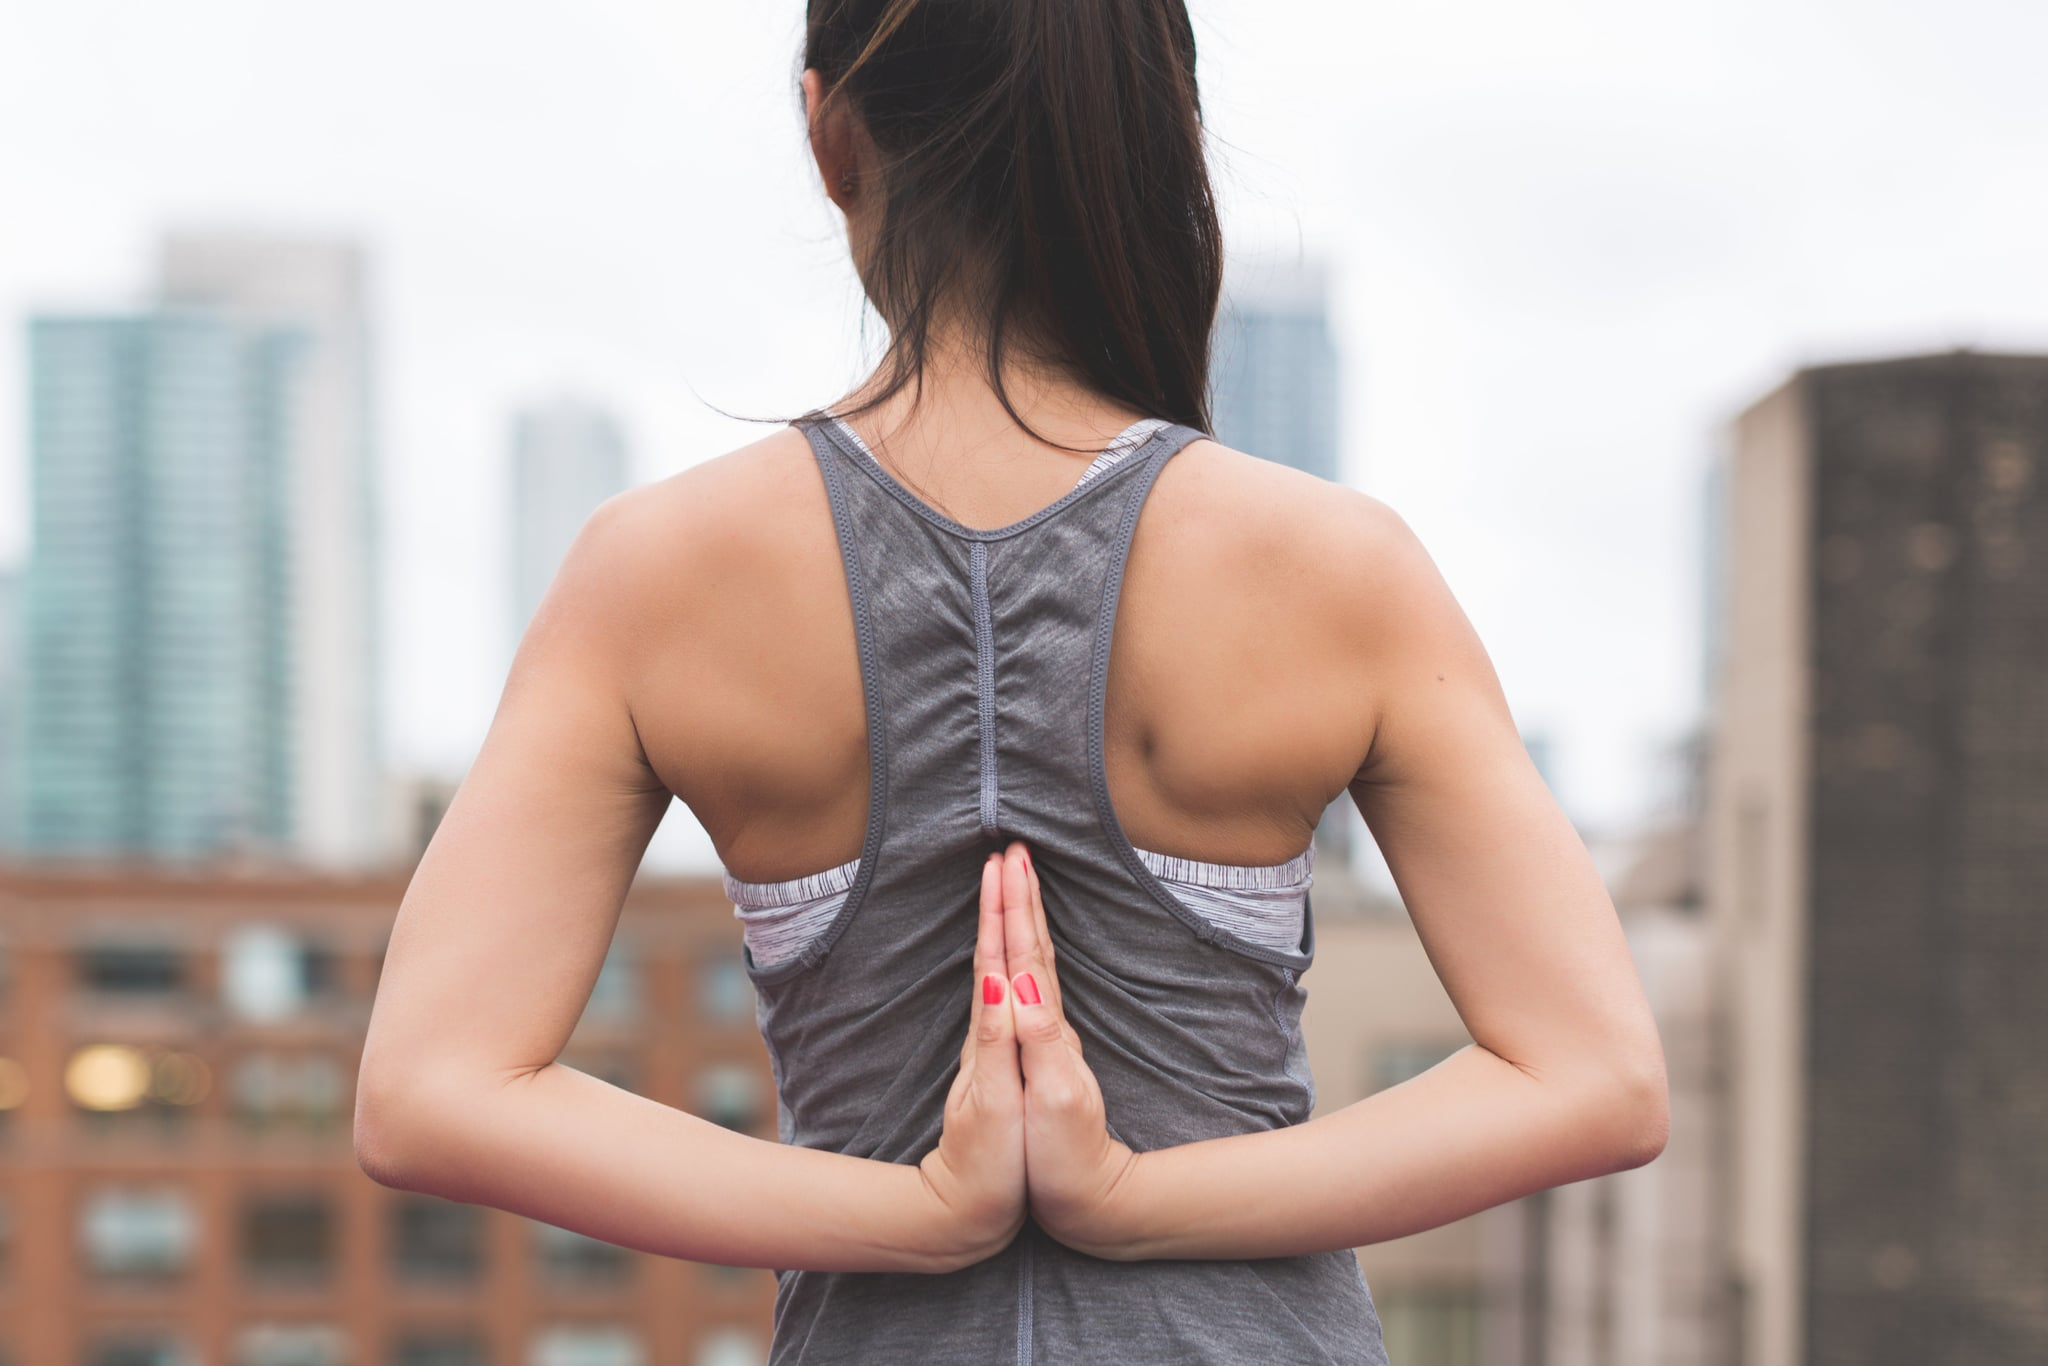 4 Things I Learned in Teacher Training That Aren't About Yoga